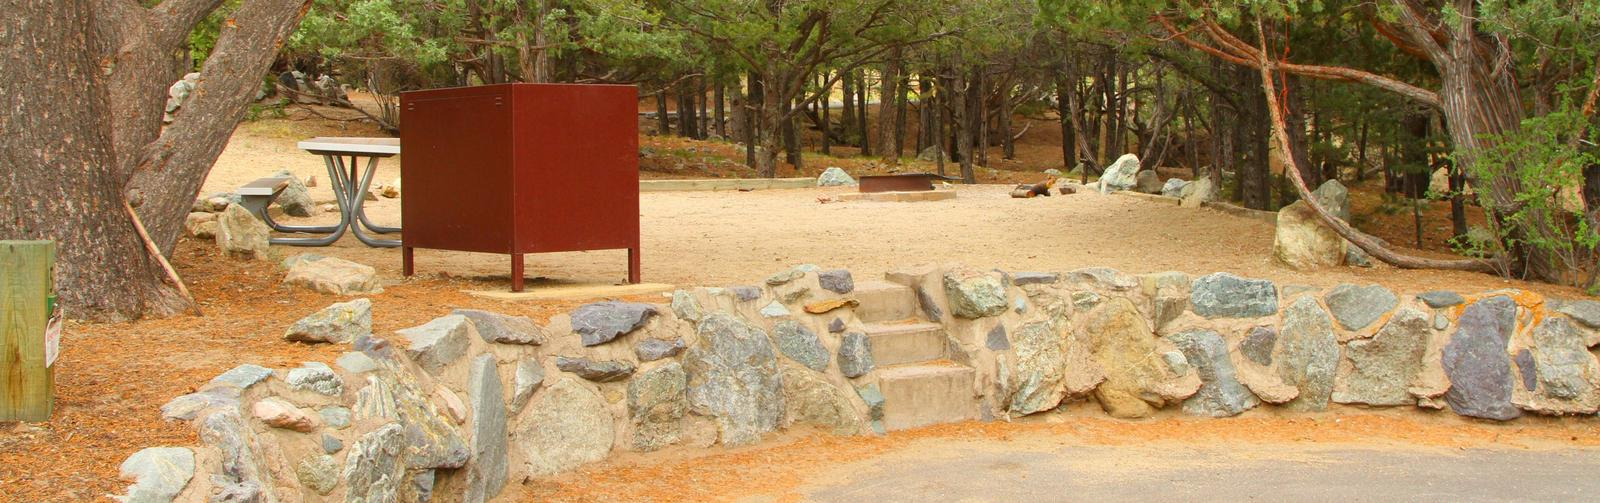 Site 15, Pinon Flats Campground